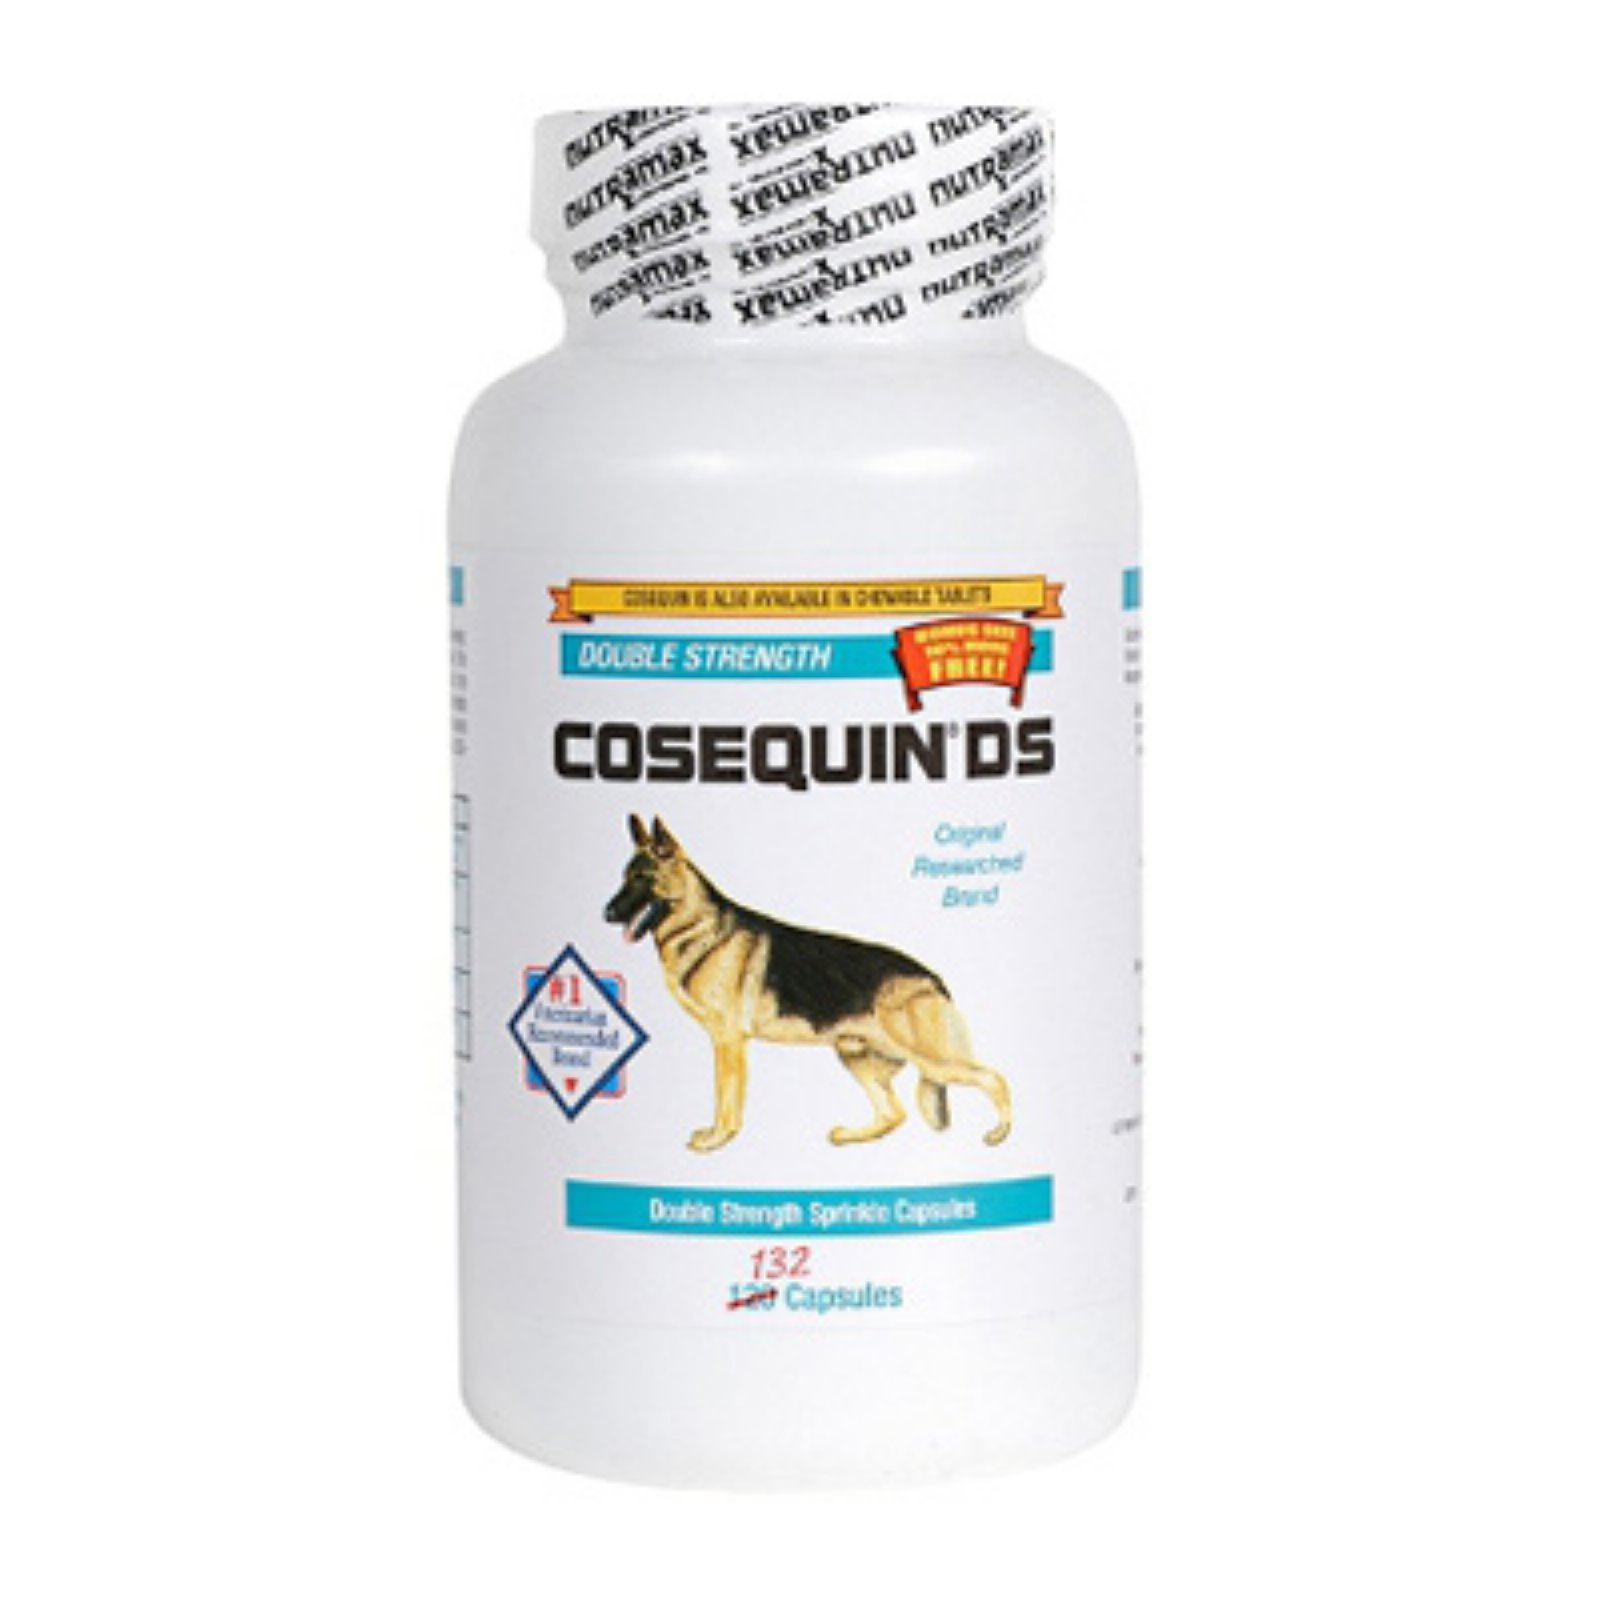 Cosequin DS Capsules Dog Joint Supplements